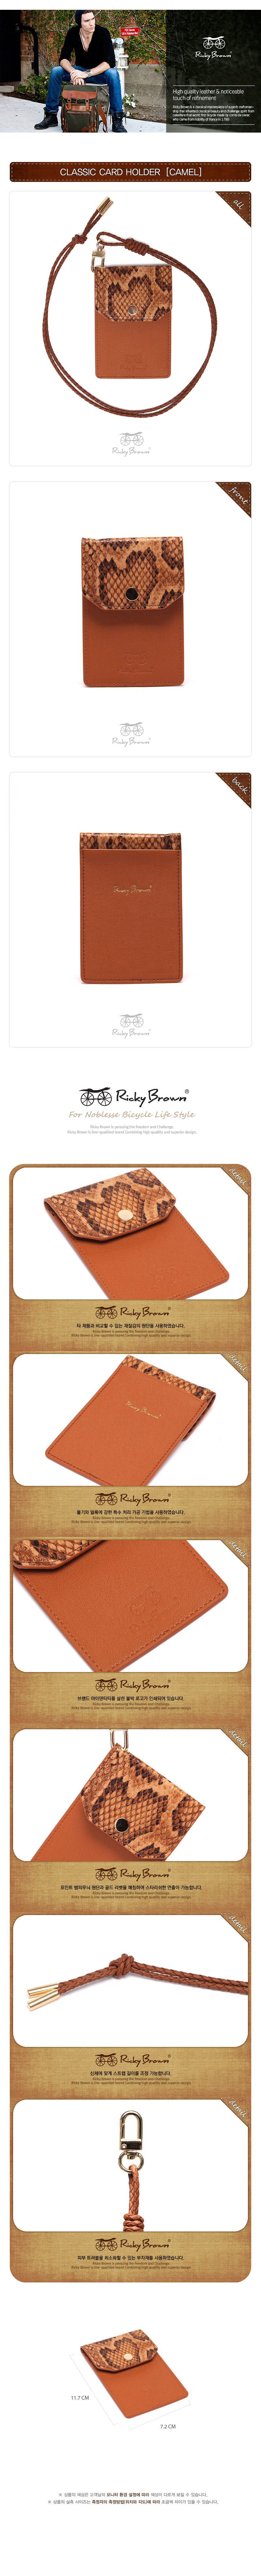 [리키브라운]RICKY BROWN - Classic Card Holder (CAMET)